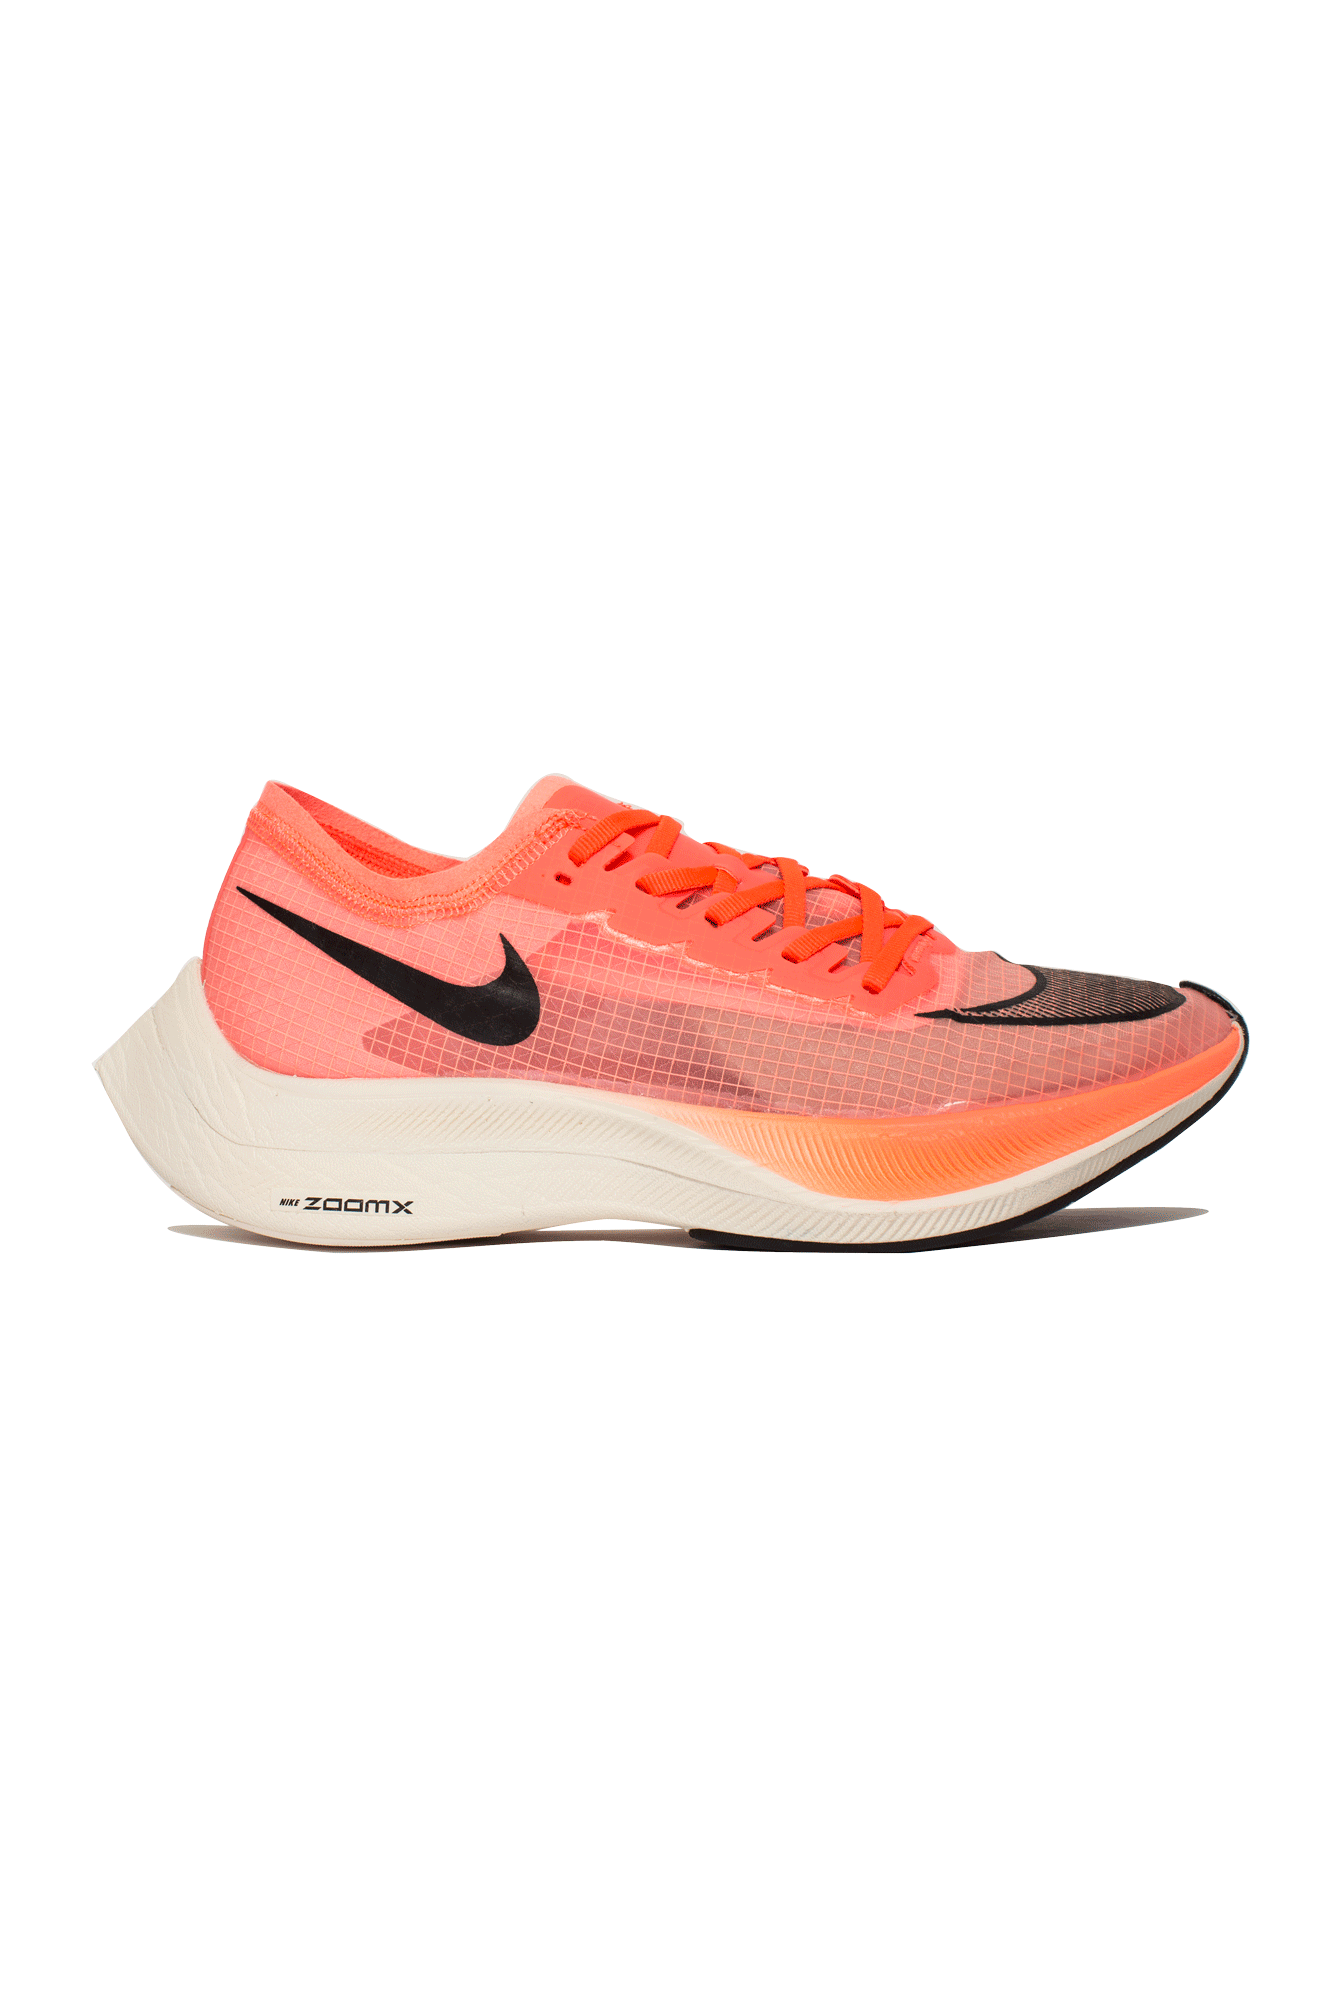 Nike Sneakers ZoomX Vaporfly Next% Orange AO4568-#000#800#7 - One Block Down